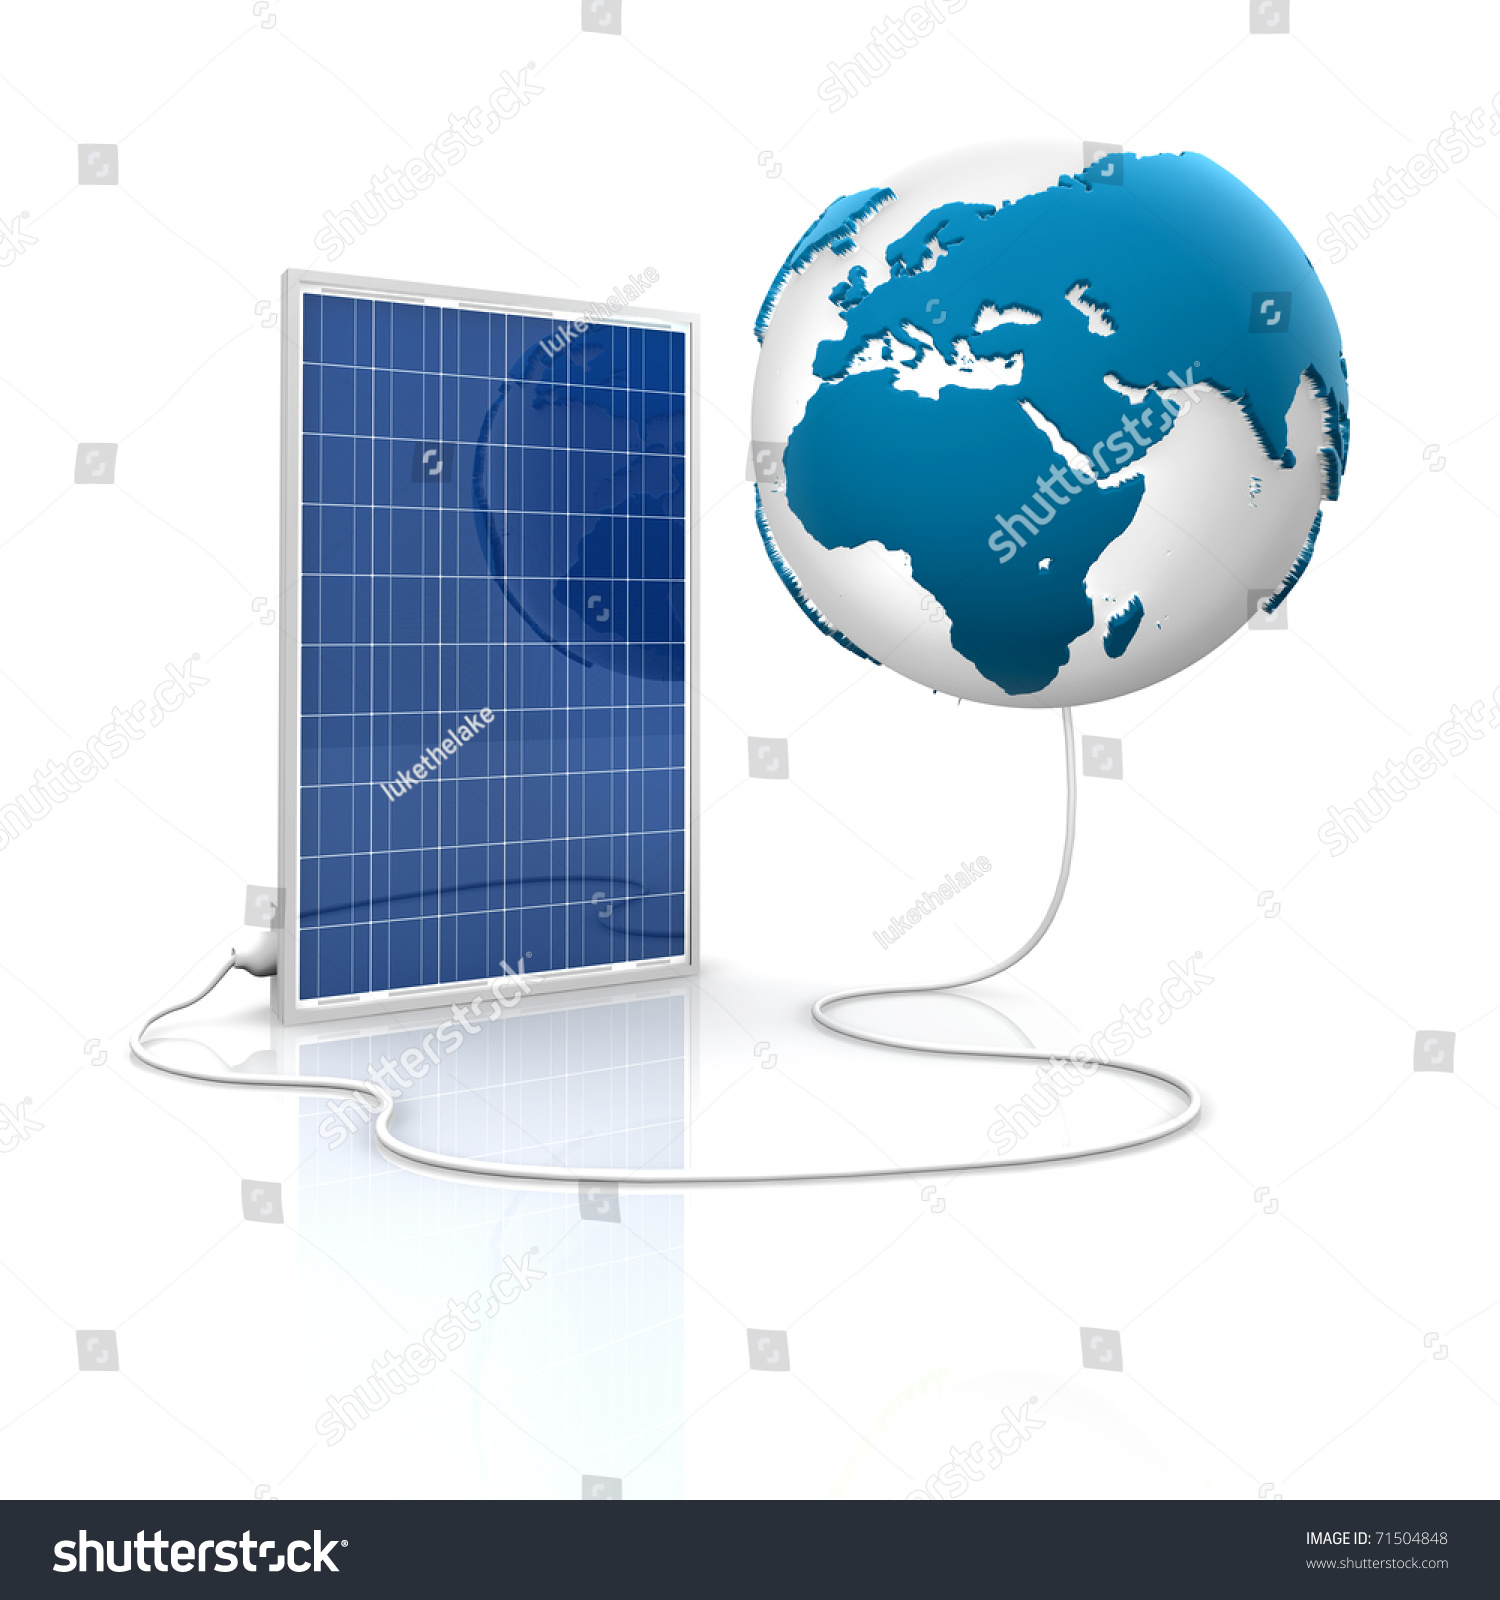 essays on alternative energy Green energy by definition is the energy formed from a sustainable, renewable energy sources that are environmentally friendly with no limited supply.